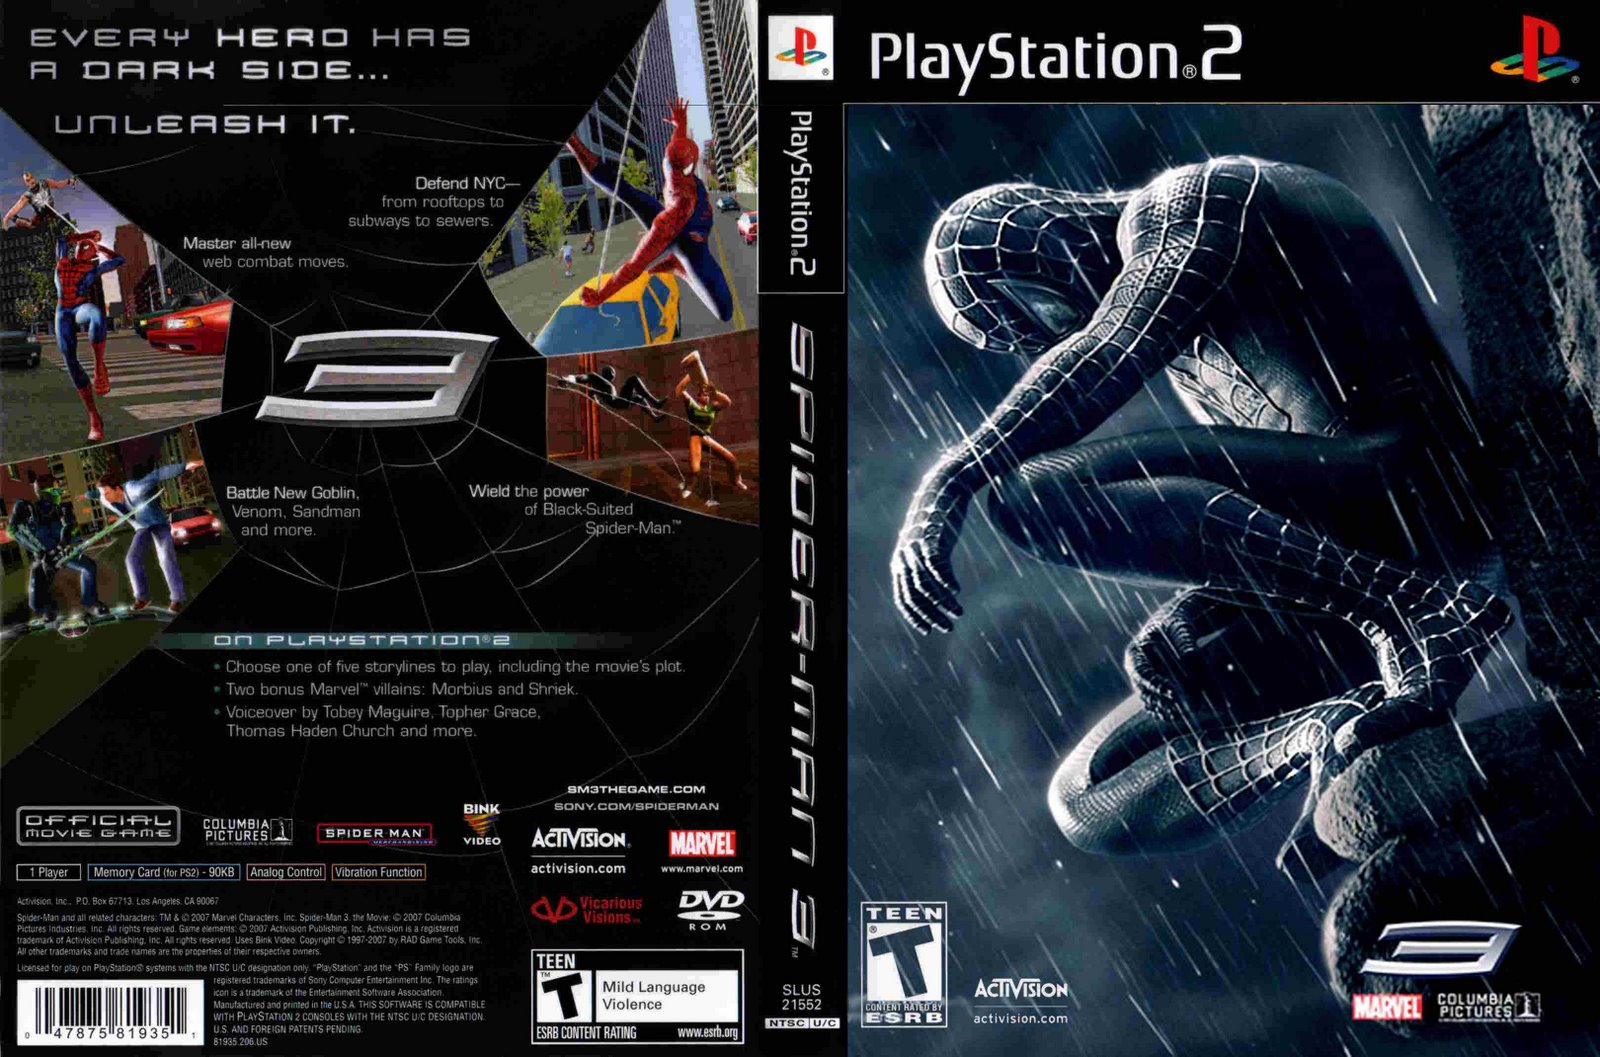 spider-man 3 (usa) iso < ps2 isos | emuparadise